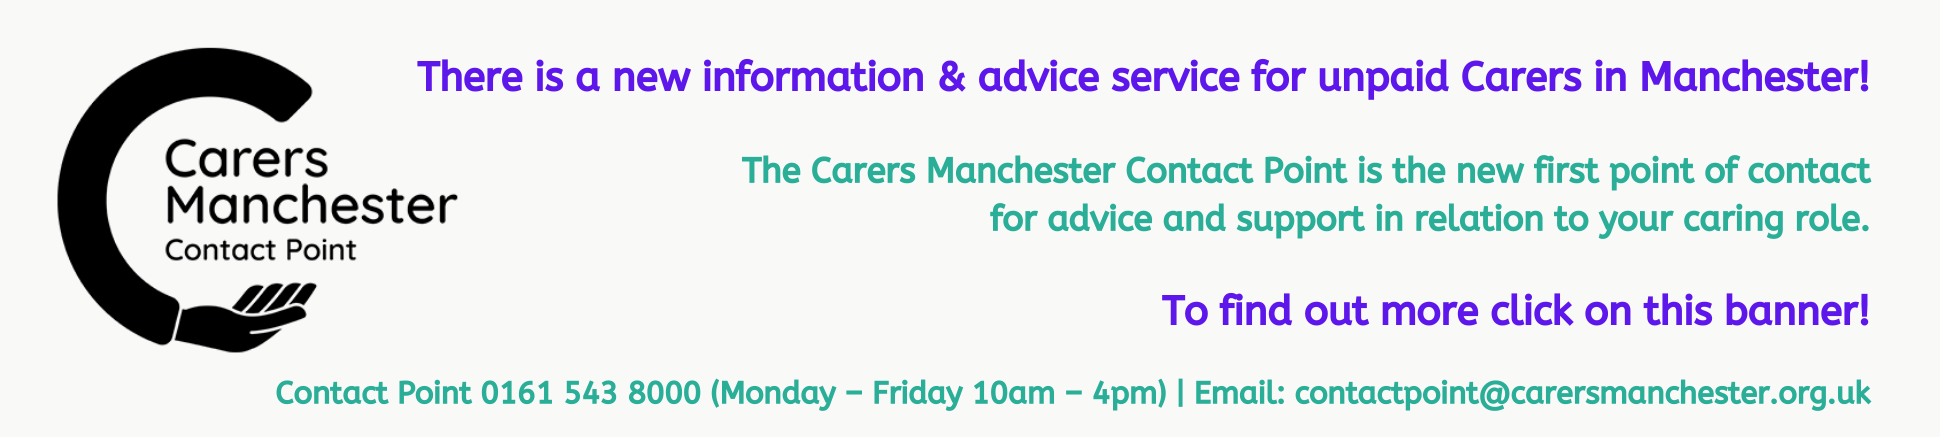 Carers Manchester Contact Point